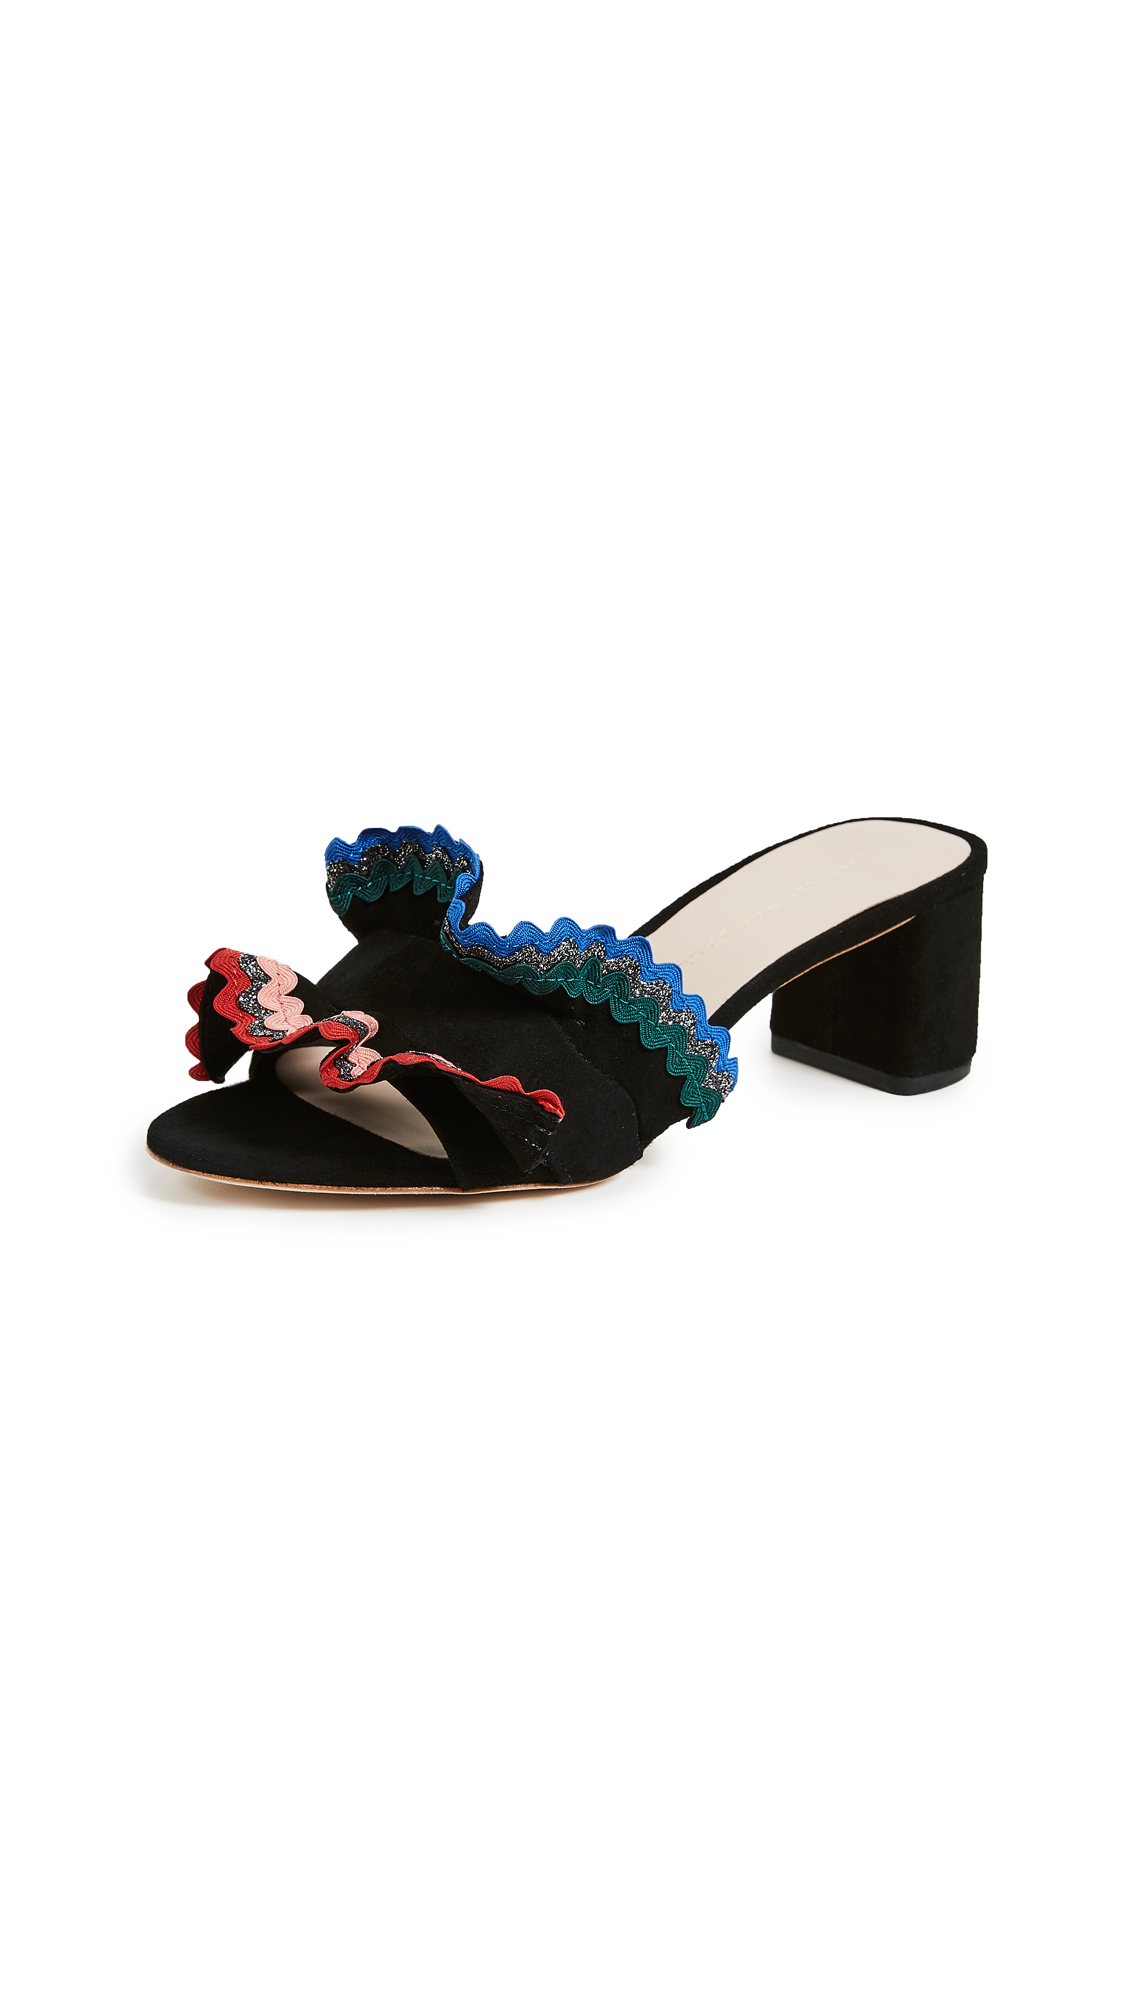 Loeffler Randall Vera City Slide Sandals - Black/Multi